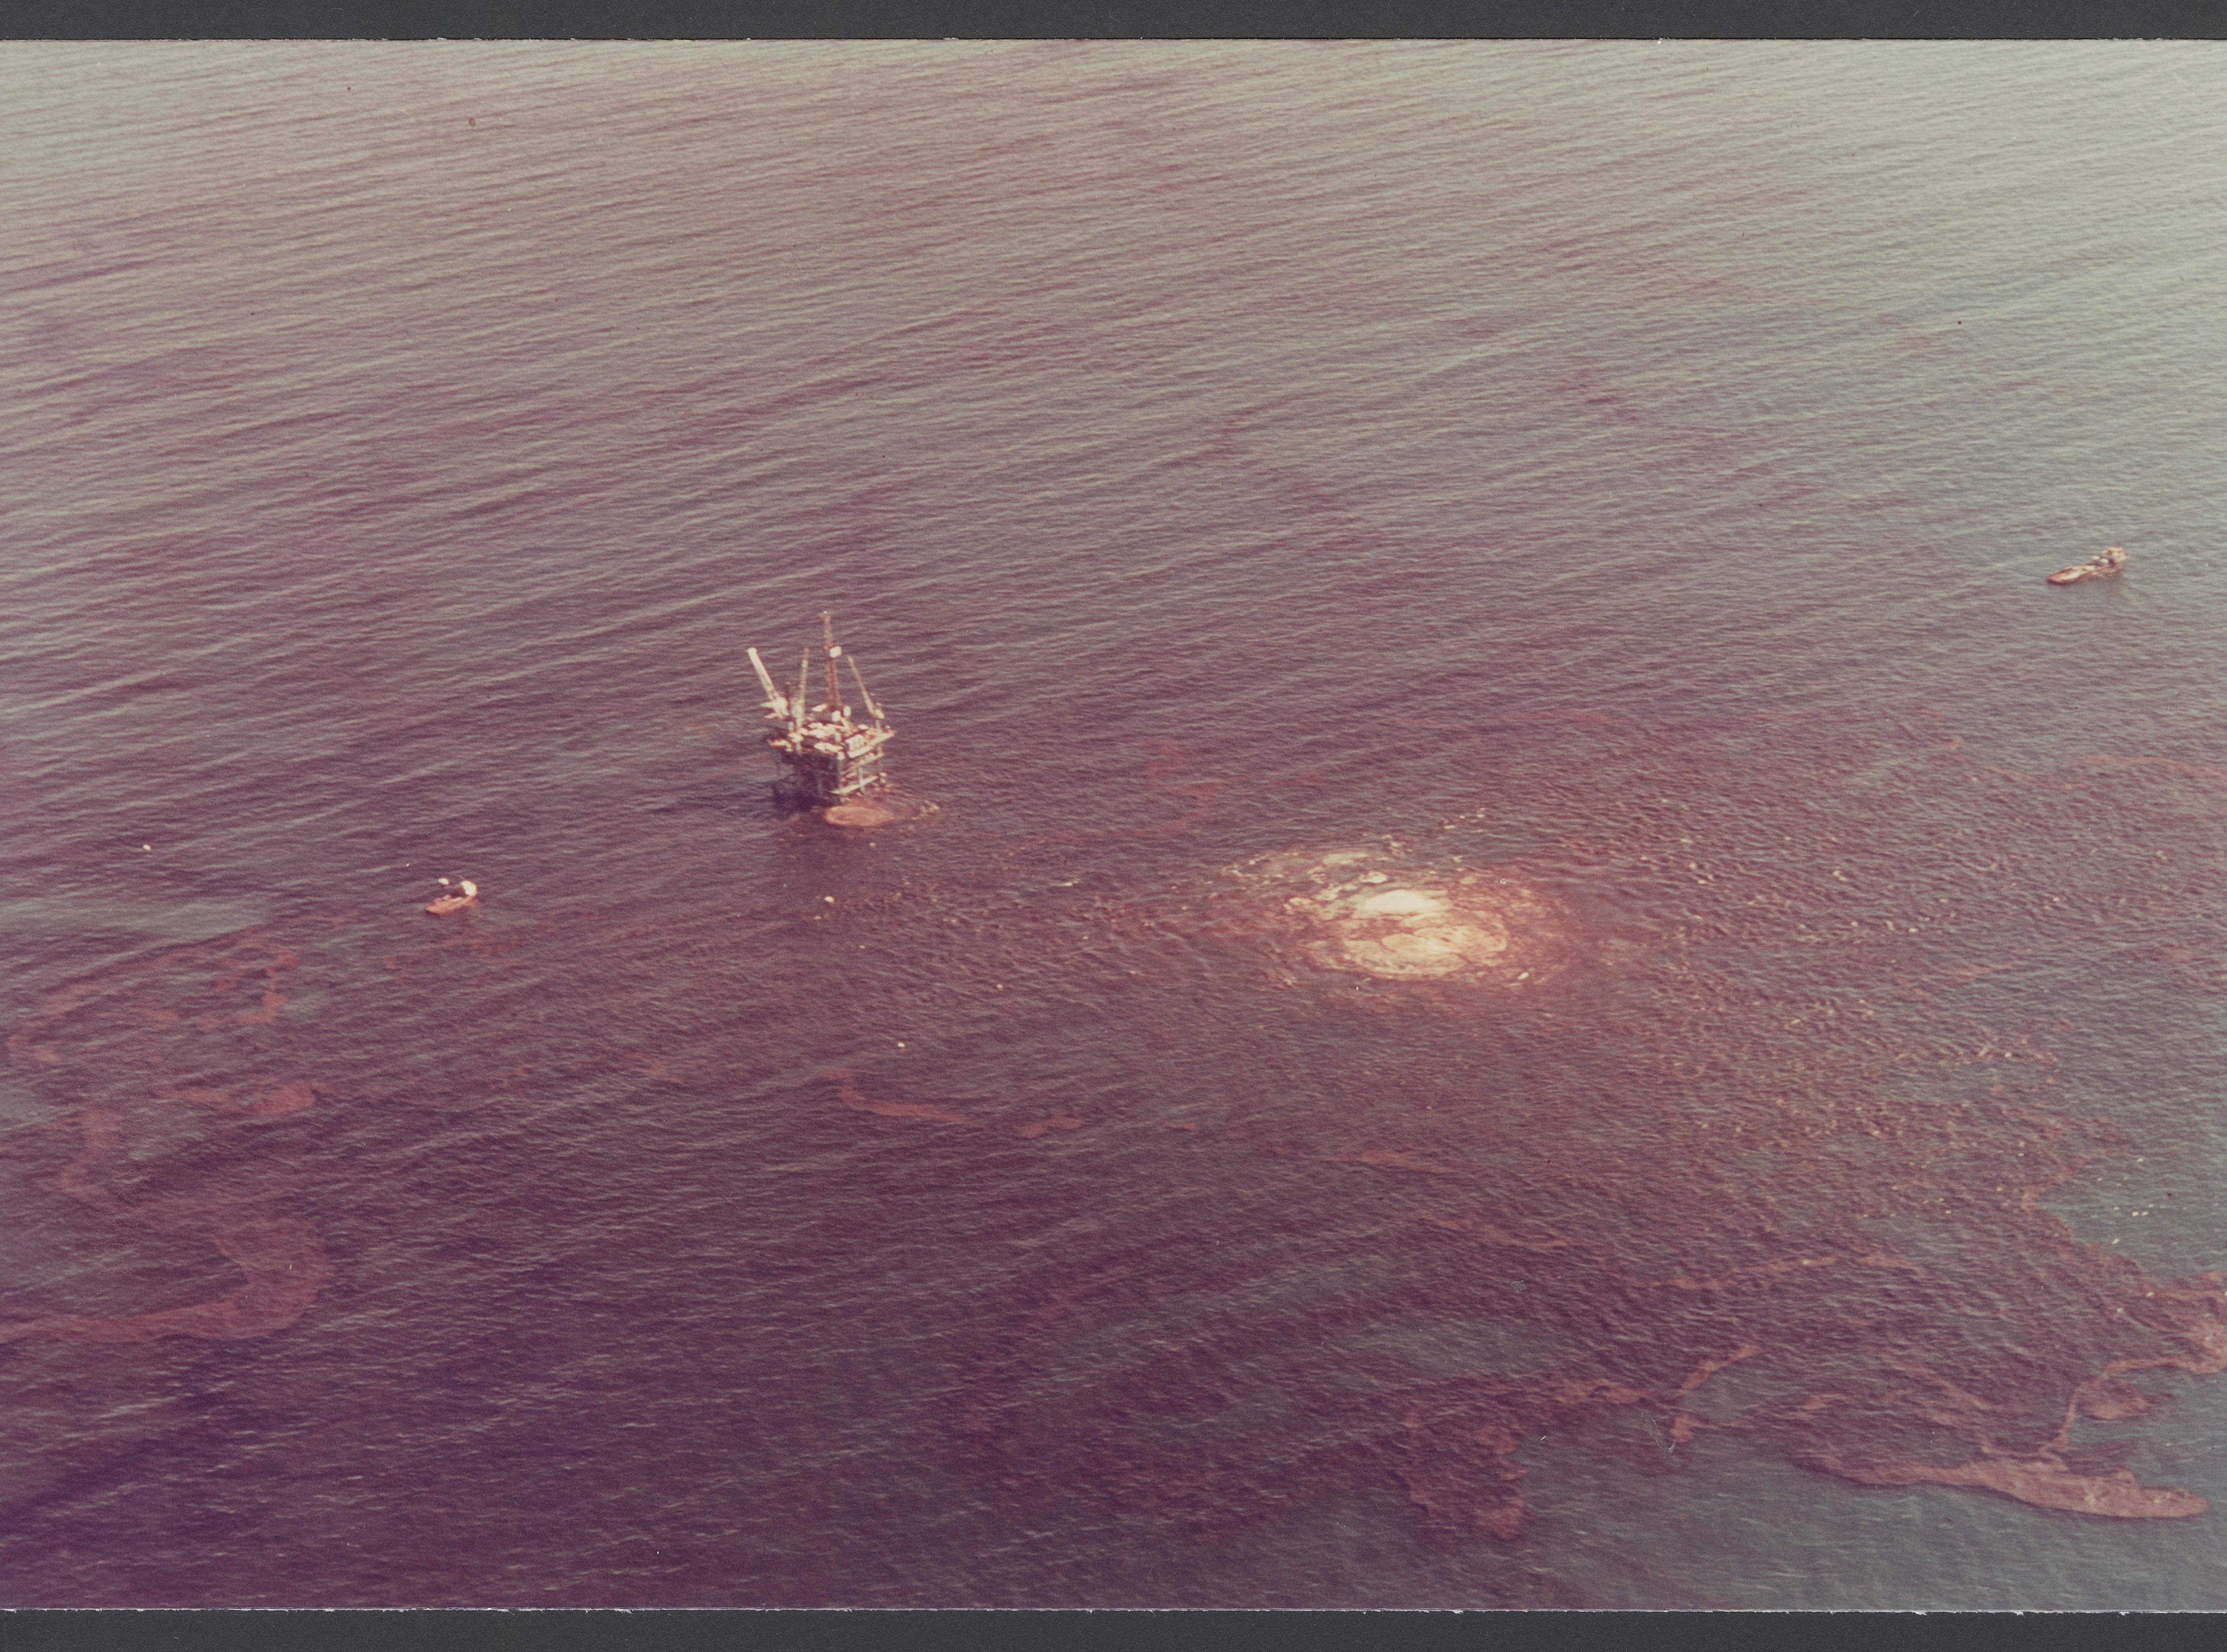 Santa Barbara oil spill. A photo from the Get Oil Out collection at the UC Santa Barbara library.